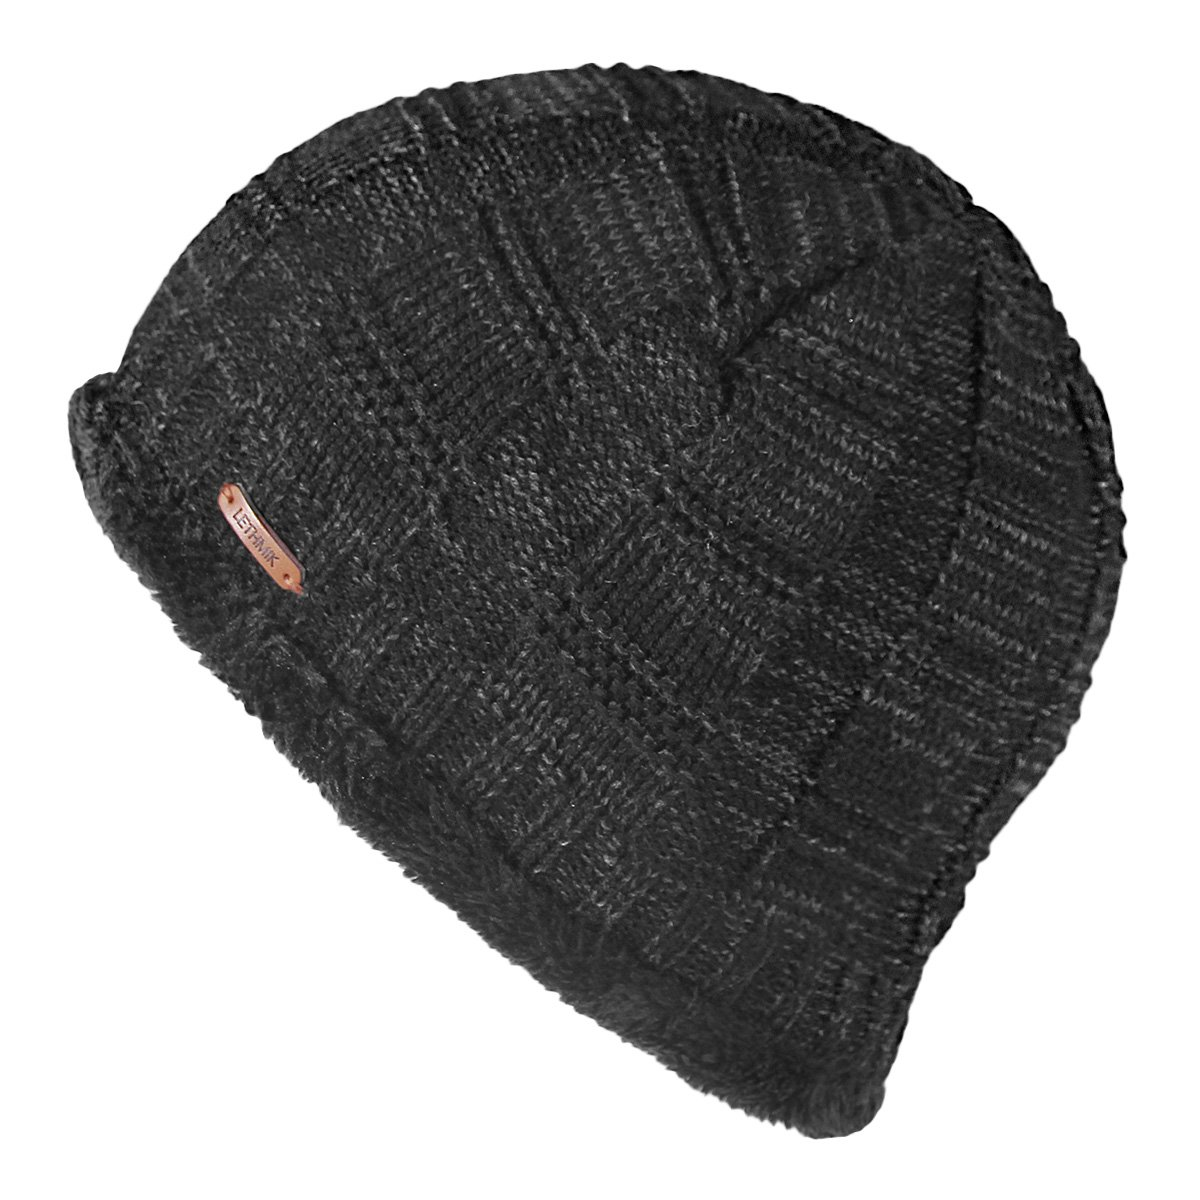 8086df0df4c3f LETHMIK Unique Ribbed Knit Beanie Warm Thick Fleece Lined Hat Mens Winter  Skull Cap Black at Amazon Men s Clothing store